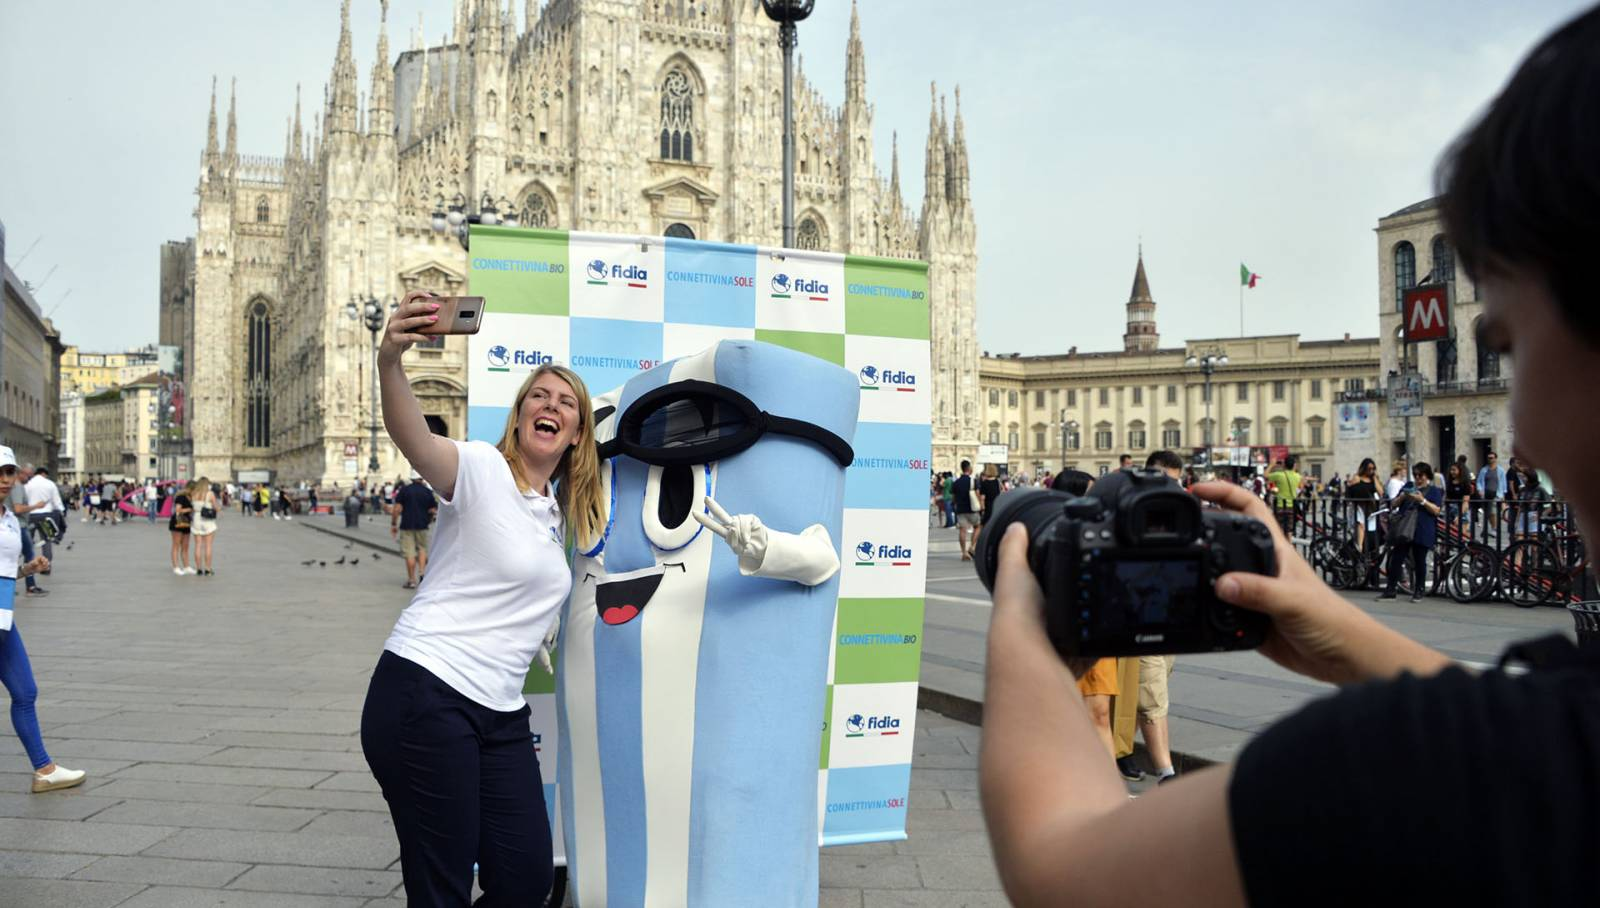 IGPDecaux Live Moving-photo set for Fidia Connettivina in Milan